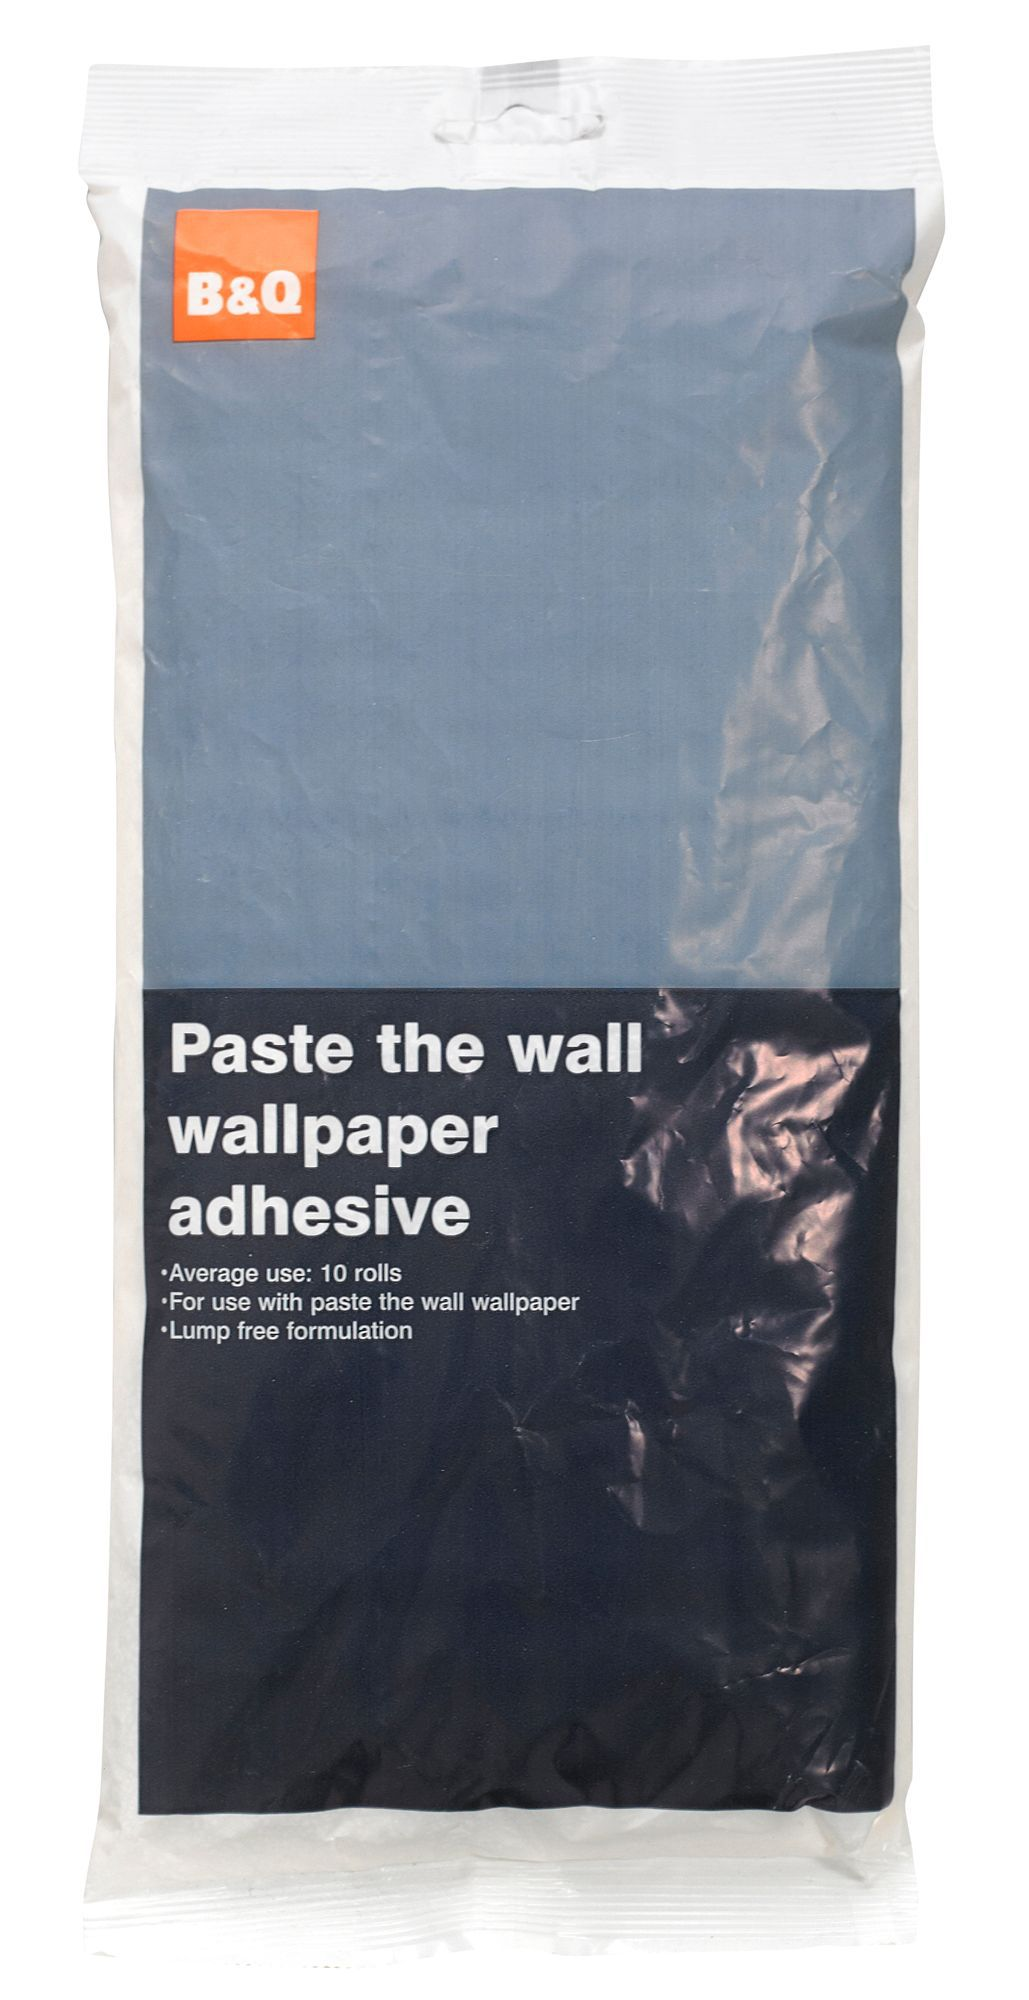 BQ Paste The Wall Wallpaper Adhesive